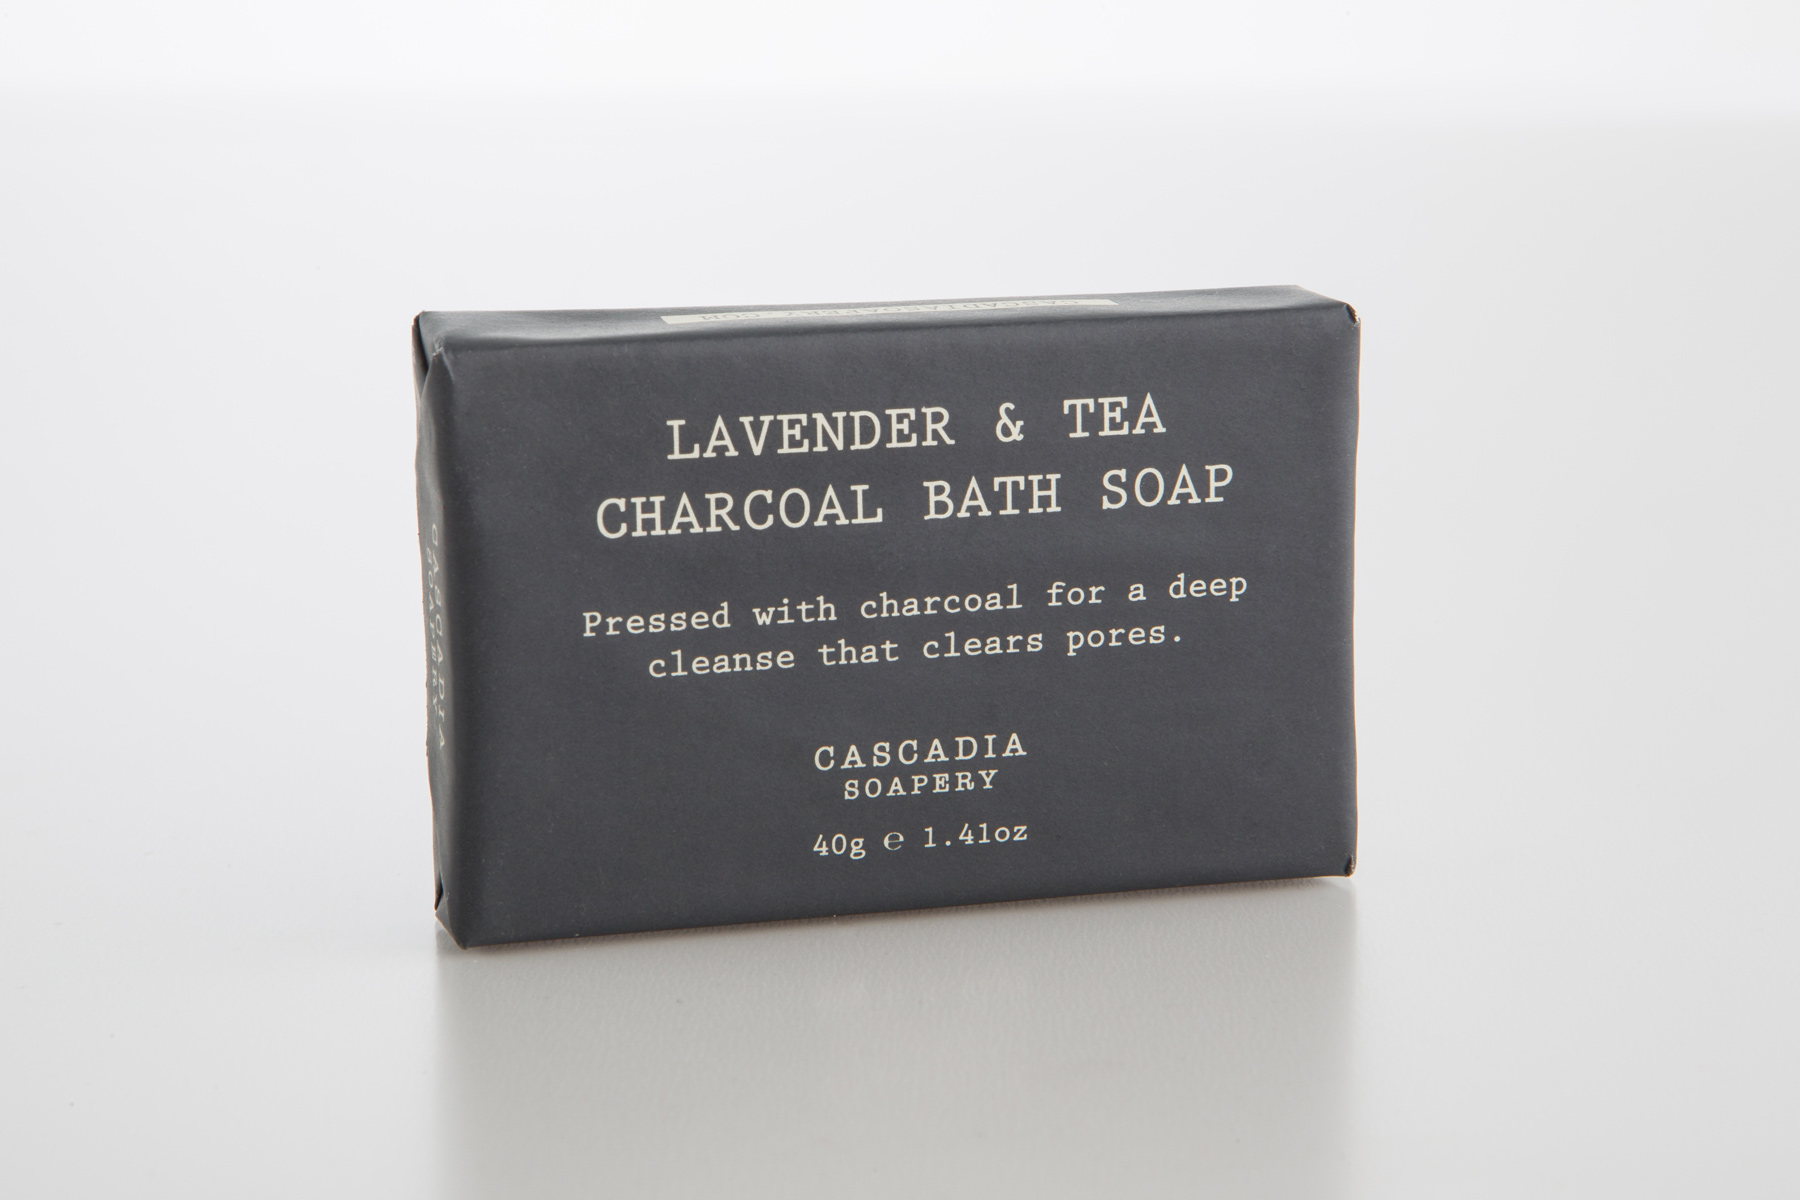 Lavender & Tea Charcoal Bath Soap